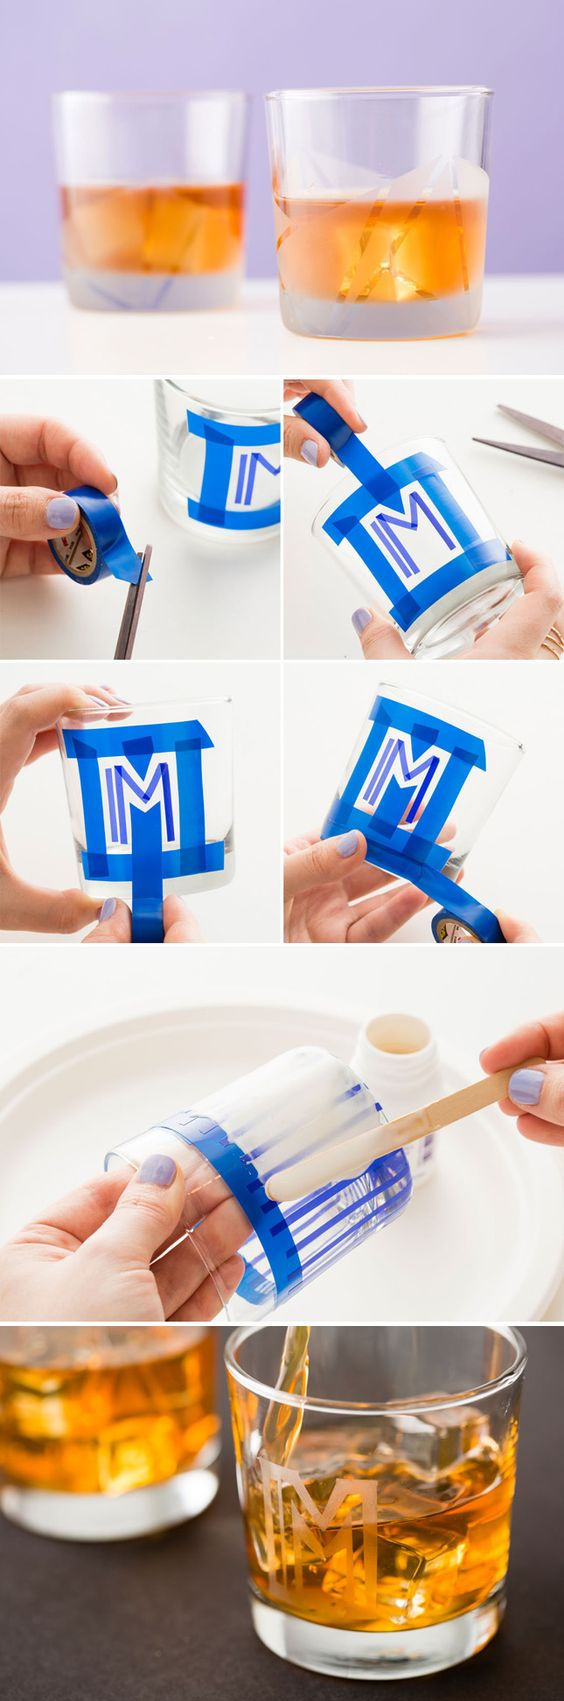 Use this kit to make your own etched glassware.